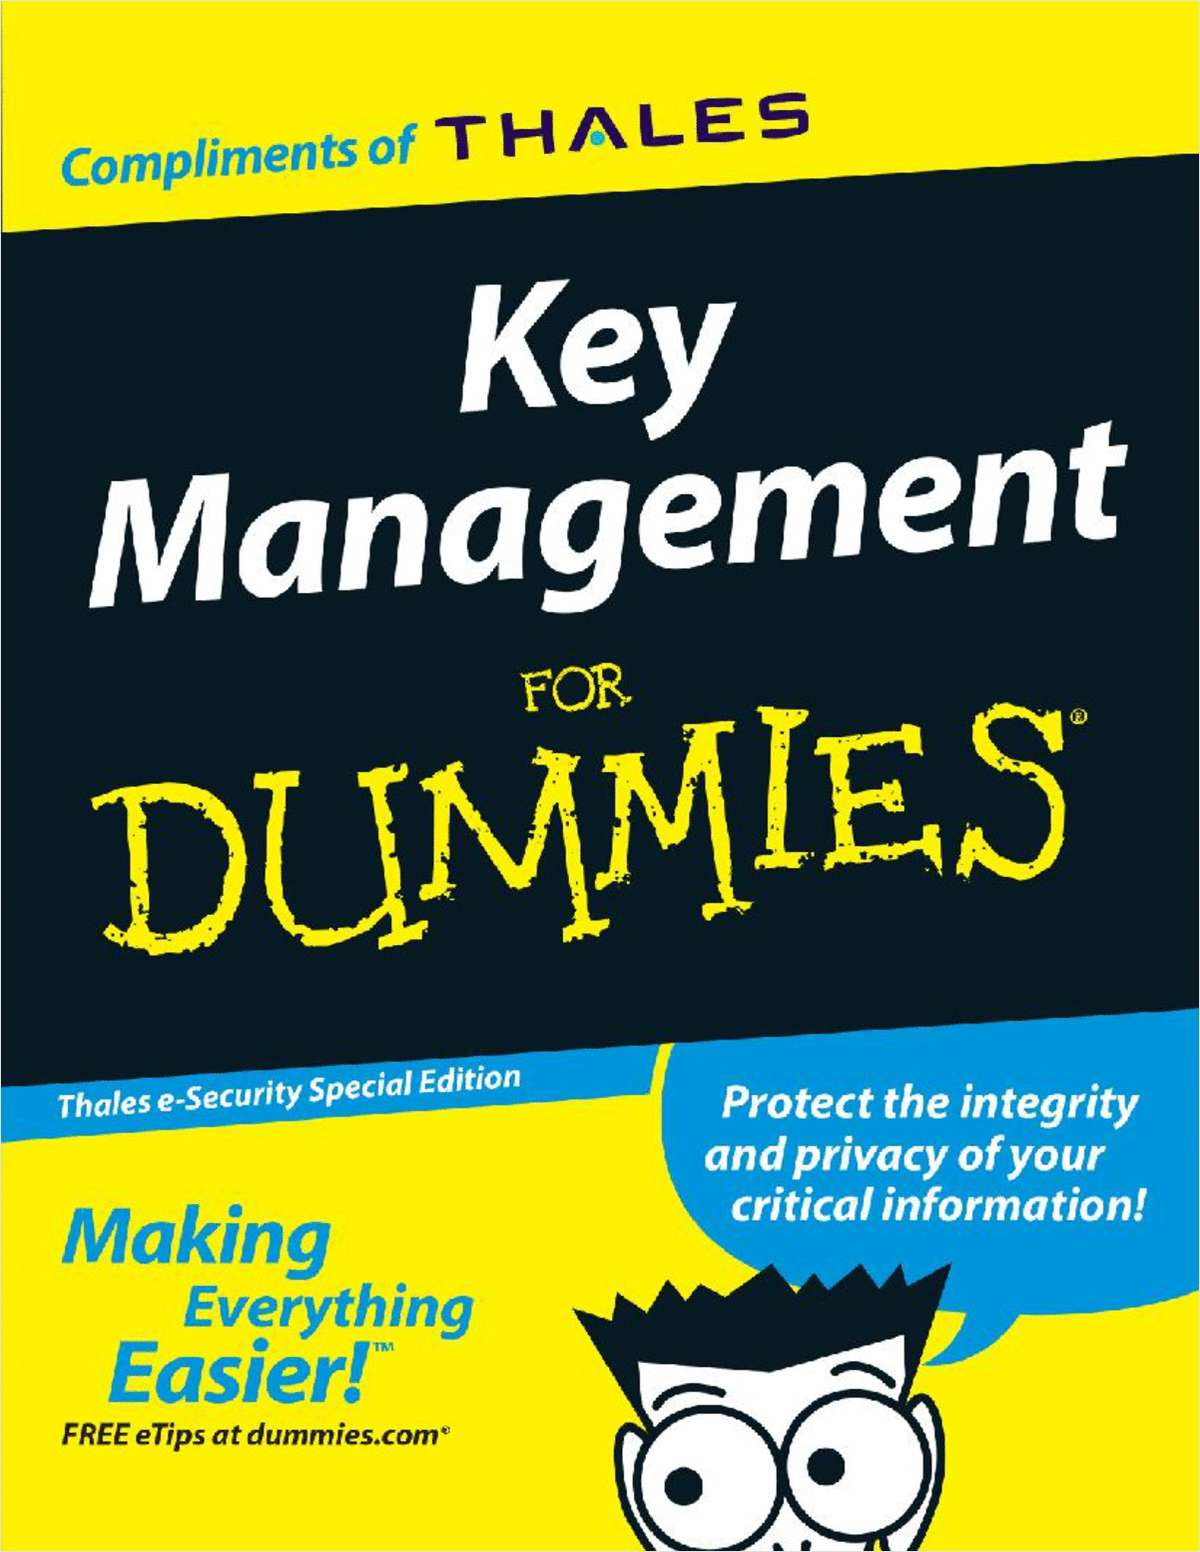 Key Management for Dummies